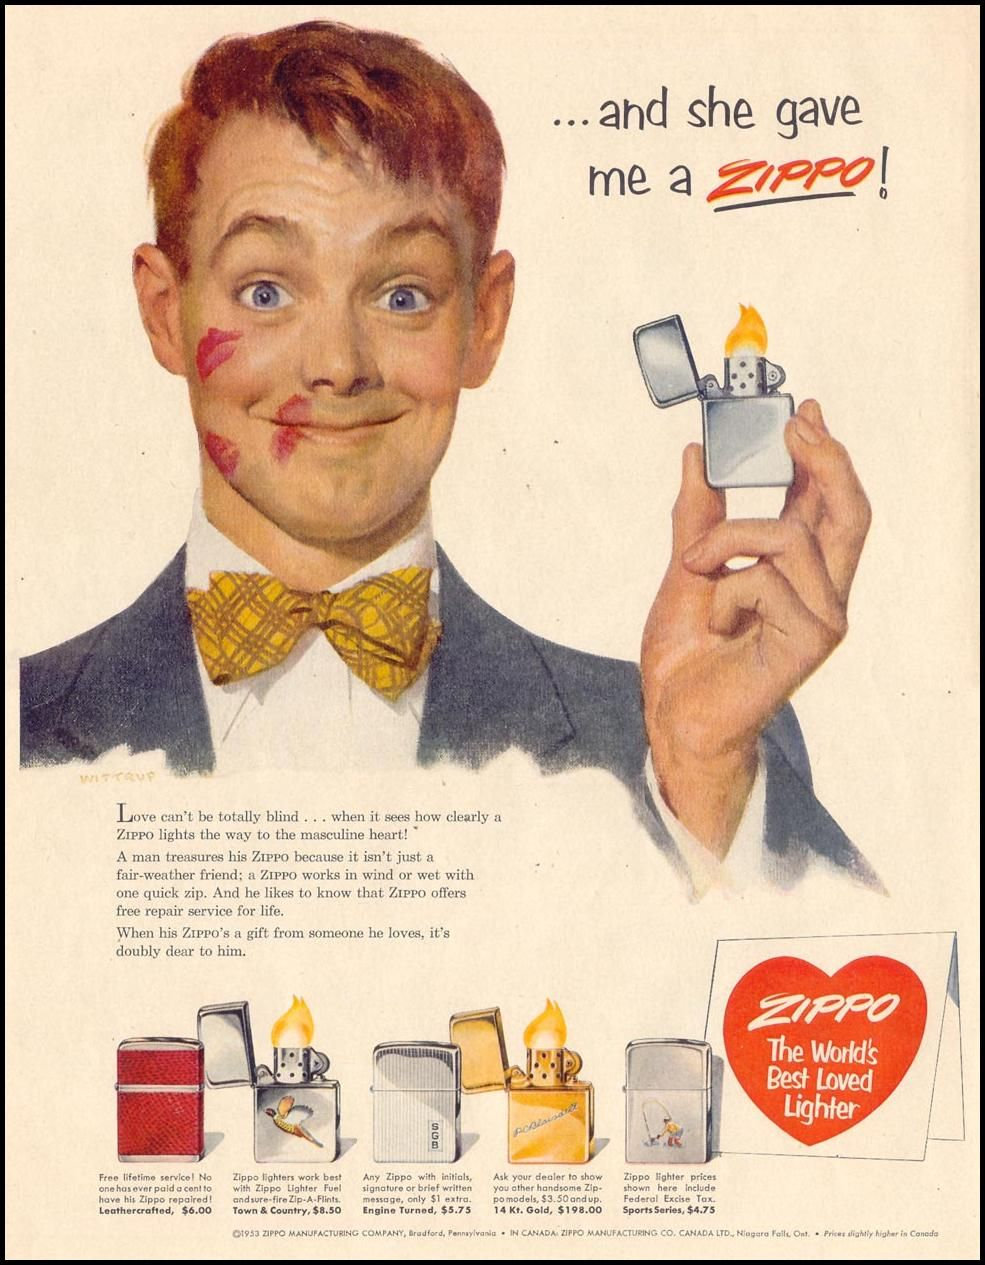 And She Gave Me A Zippo Old Advertisements Vintage Ads Vintage Advertisements